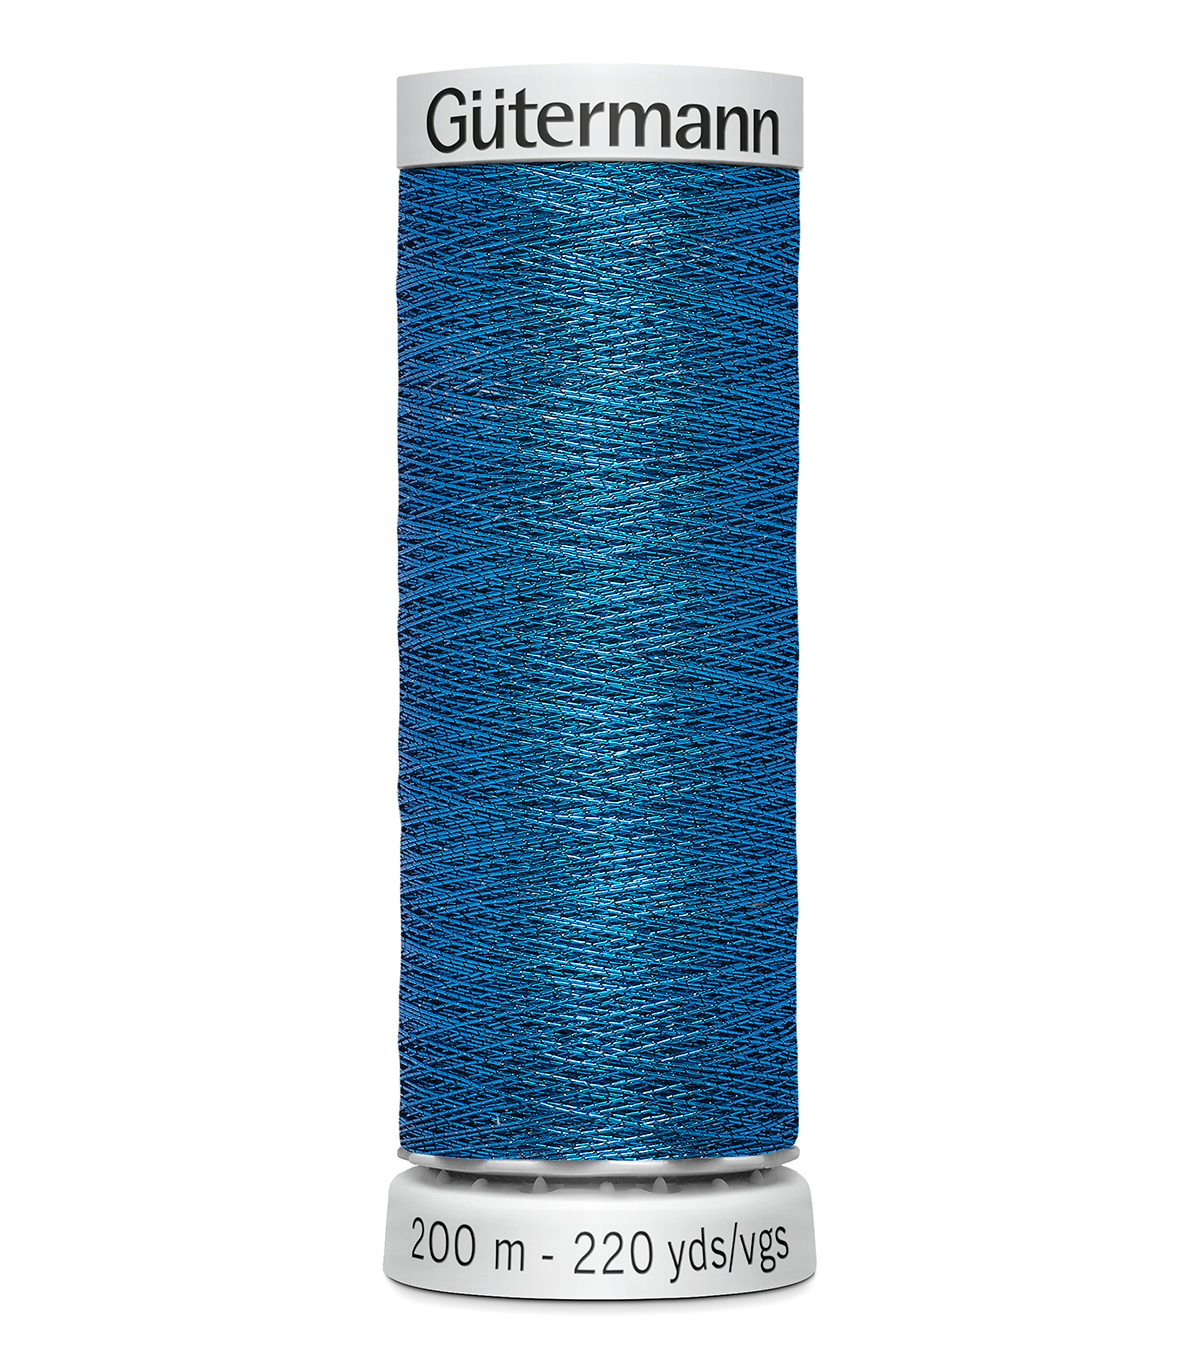 Gutermann 200M Dekor Thread, 200m Dekor Metallic-true Blue